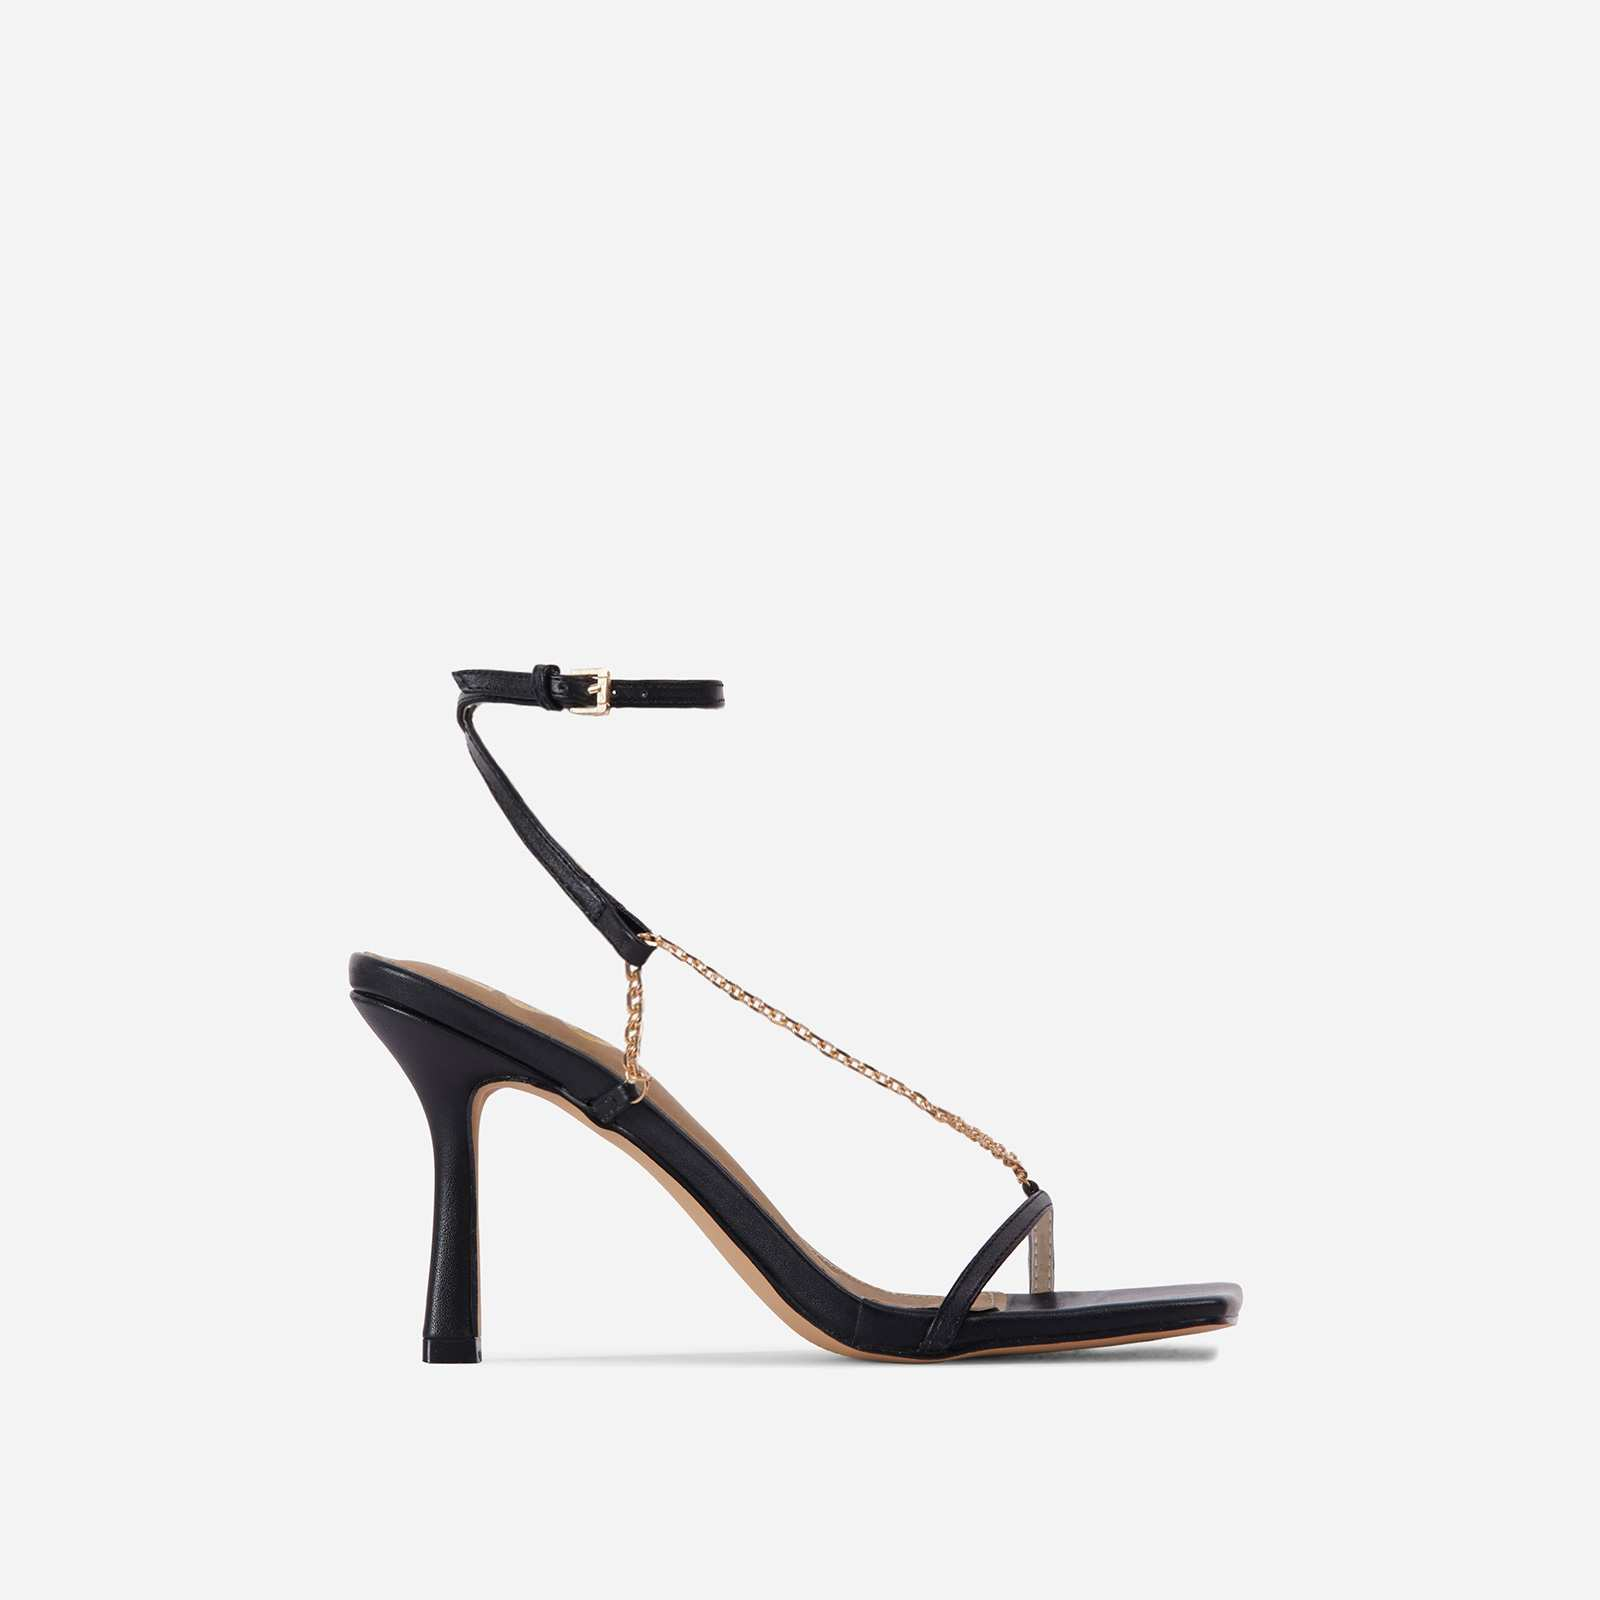 The-Muse Chain Detail Strappy Square Toe Heel In Black Faux Leather